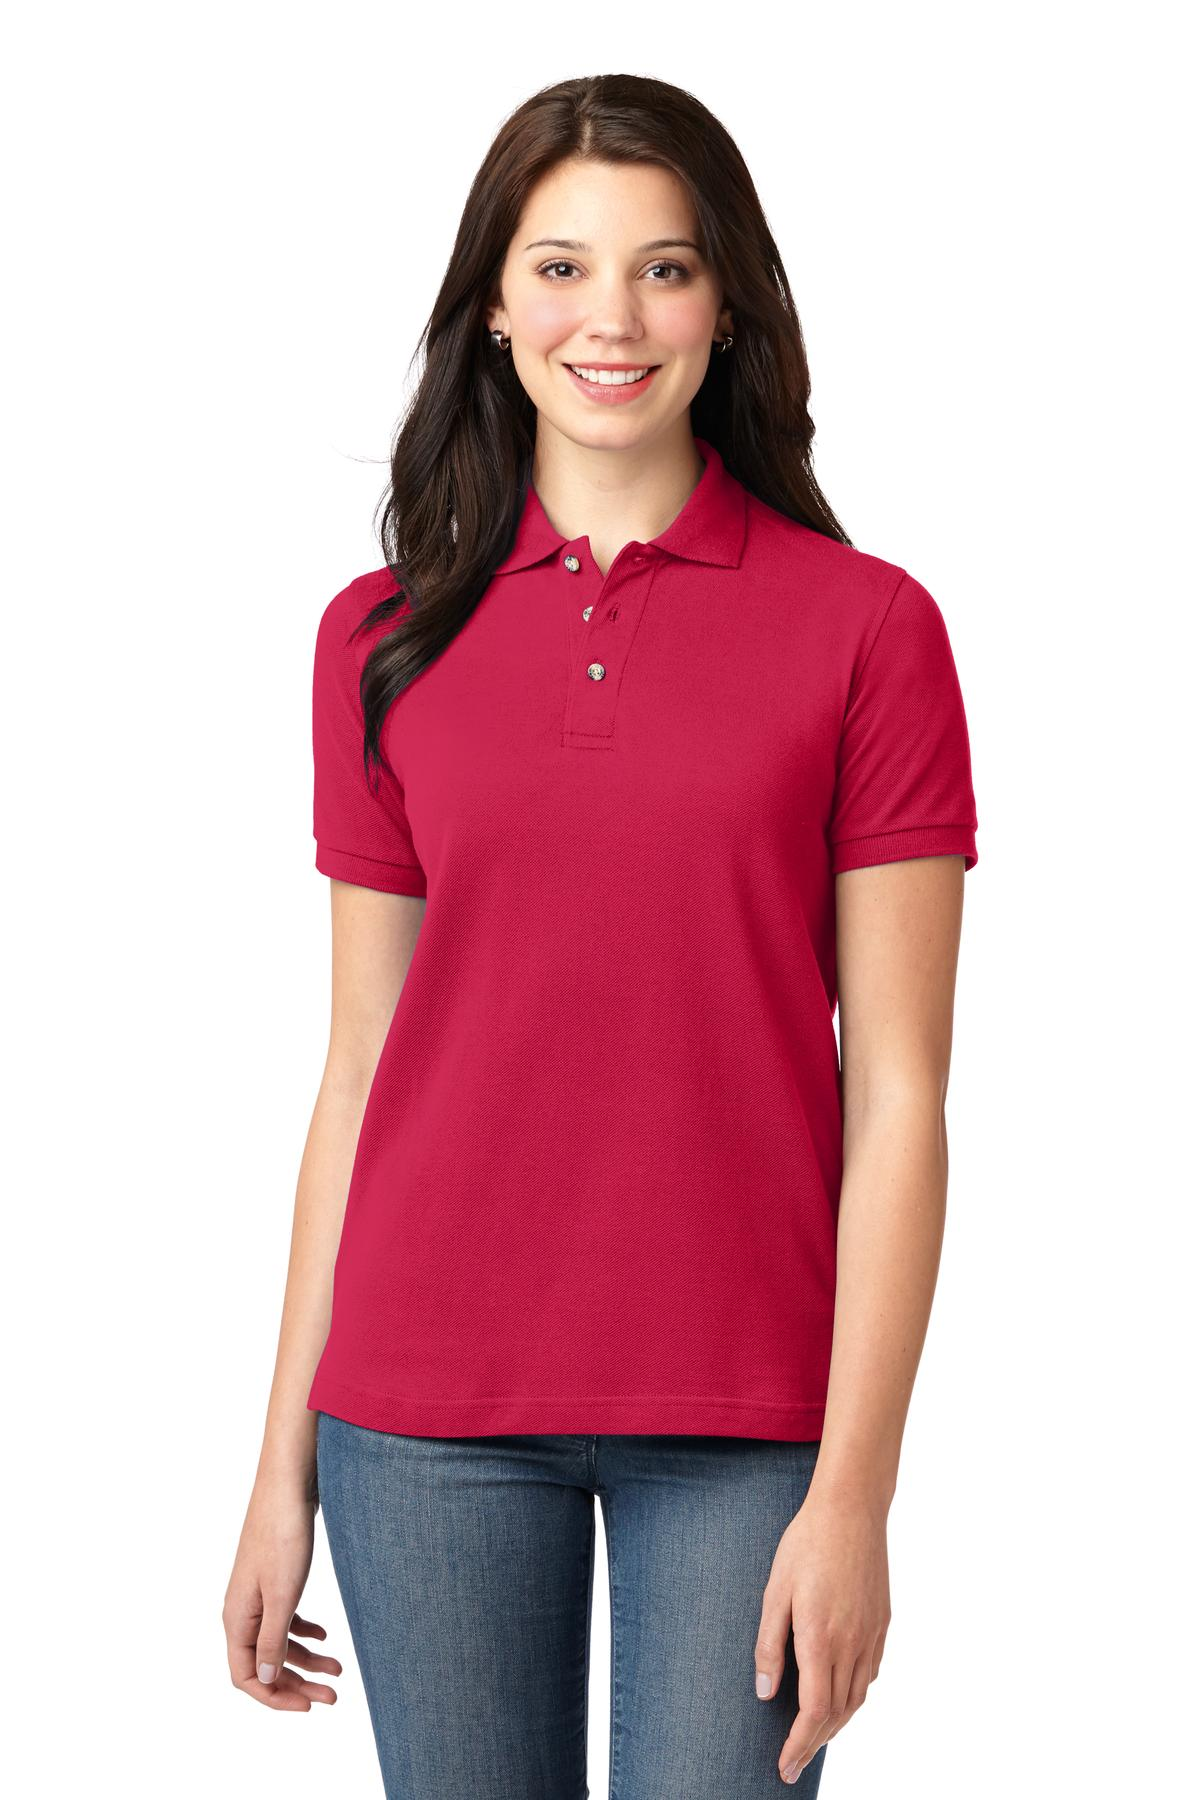 Port Authority ®  Ladies Heavyweight Cotton Pique Polo.  L420 - Red